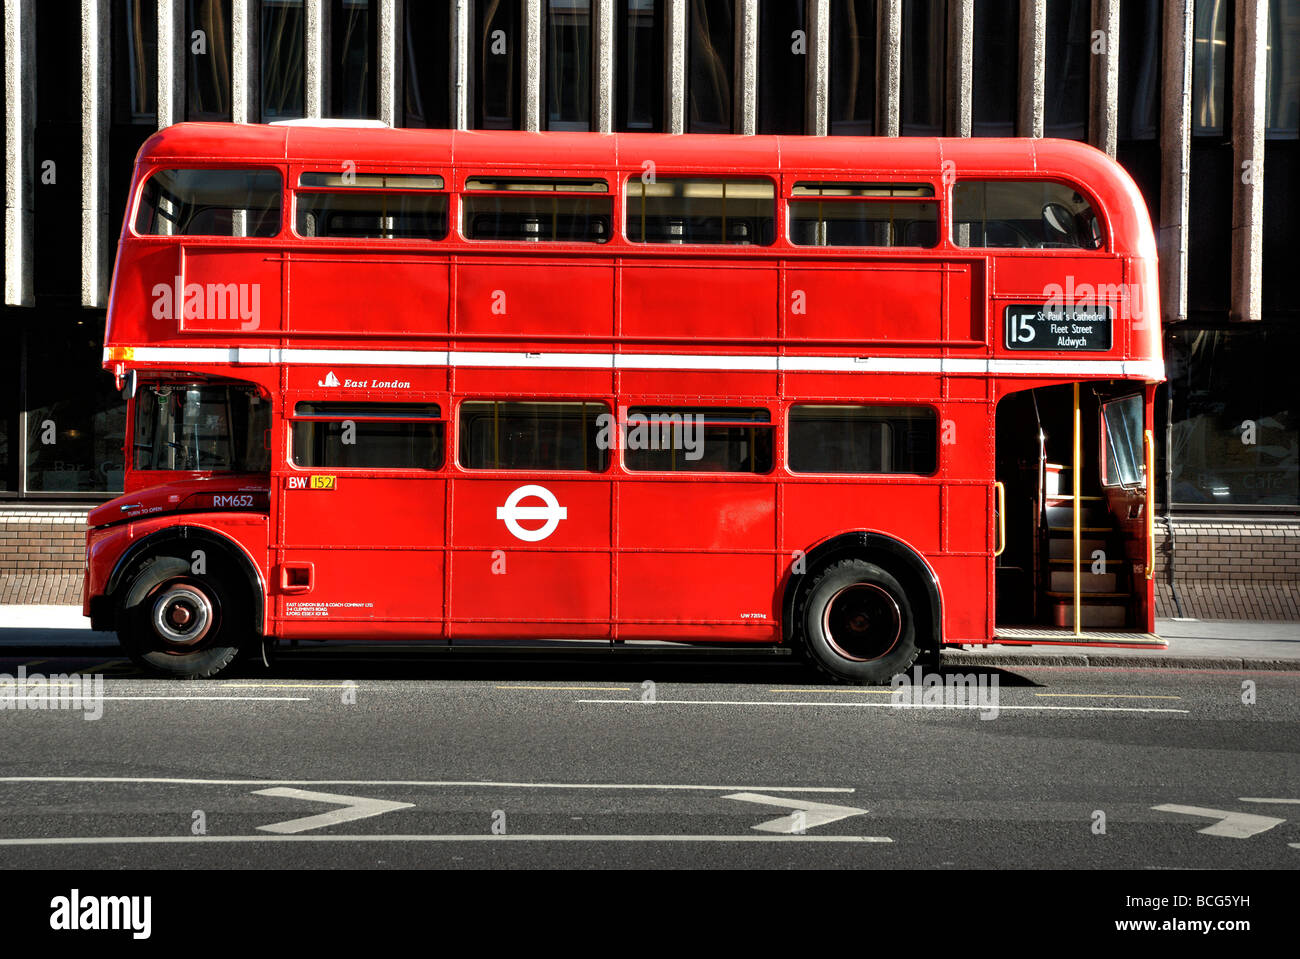 nr 15 london bus mit keine werbung seitenansicht stockfoto bild 24942165 alamy. Black Bedroom Furniture Sets. Home Design Ideas